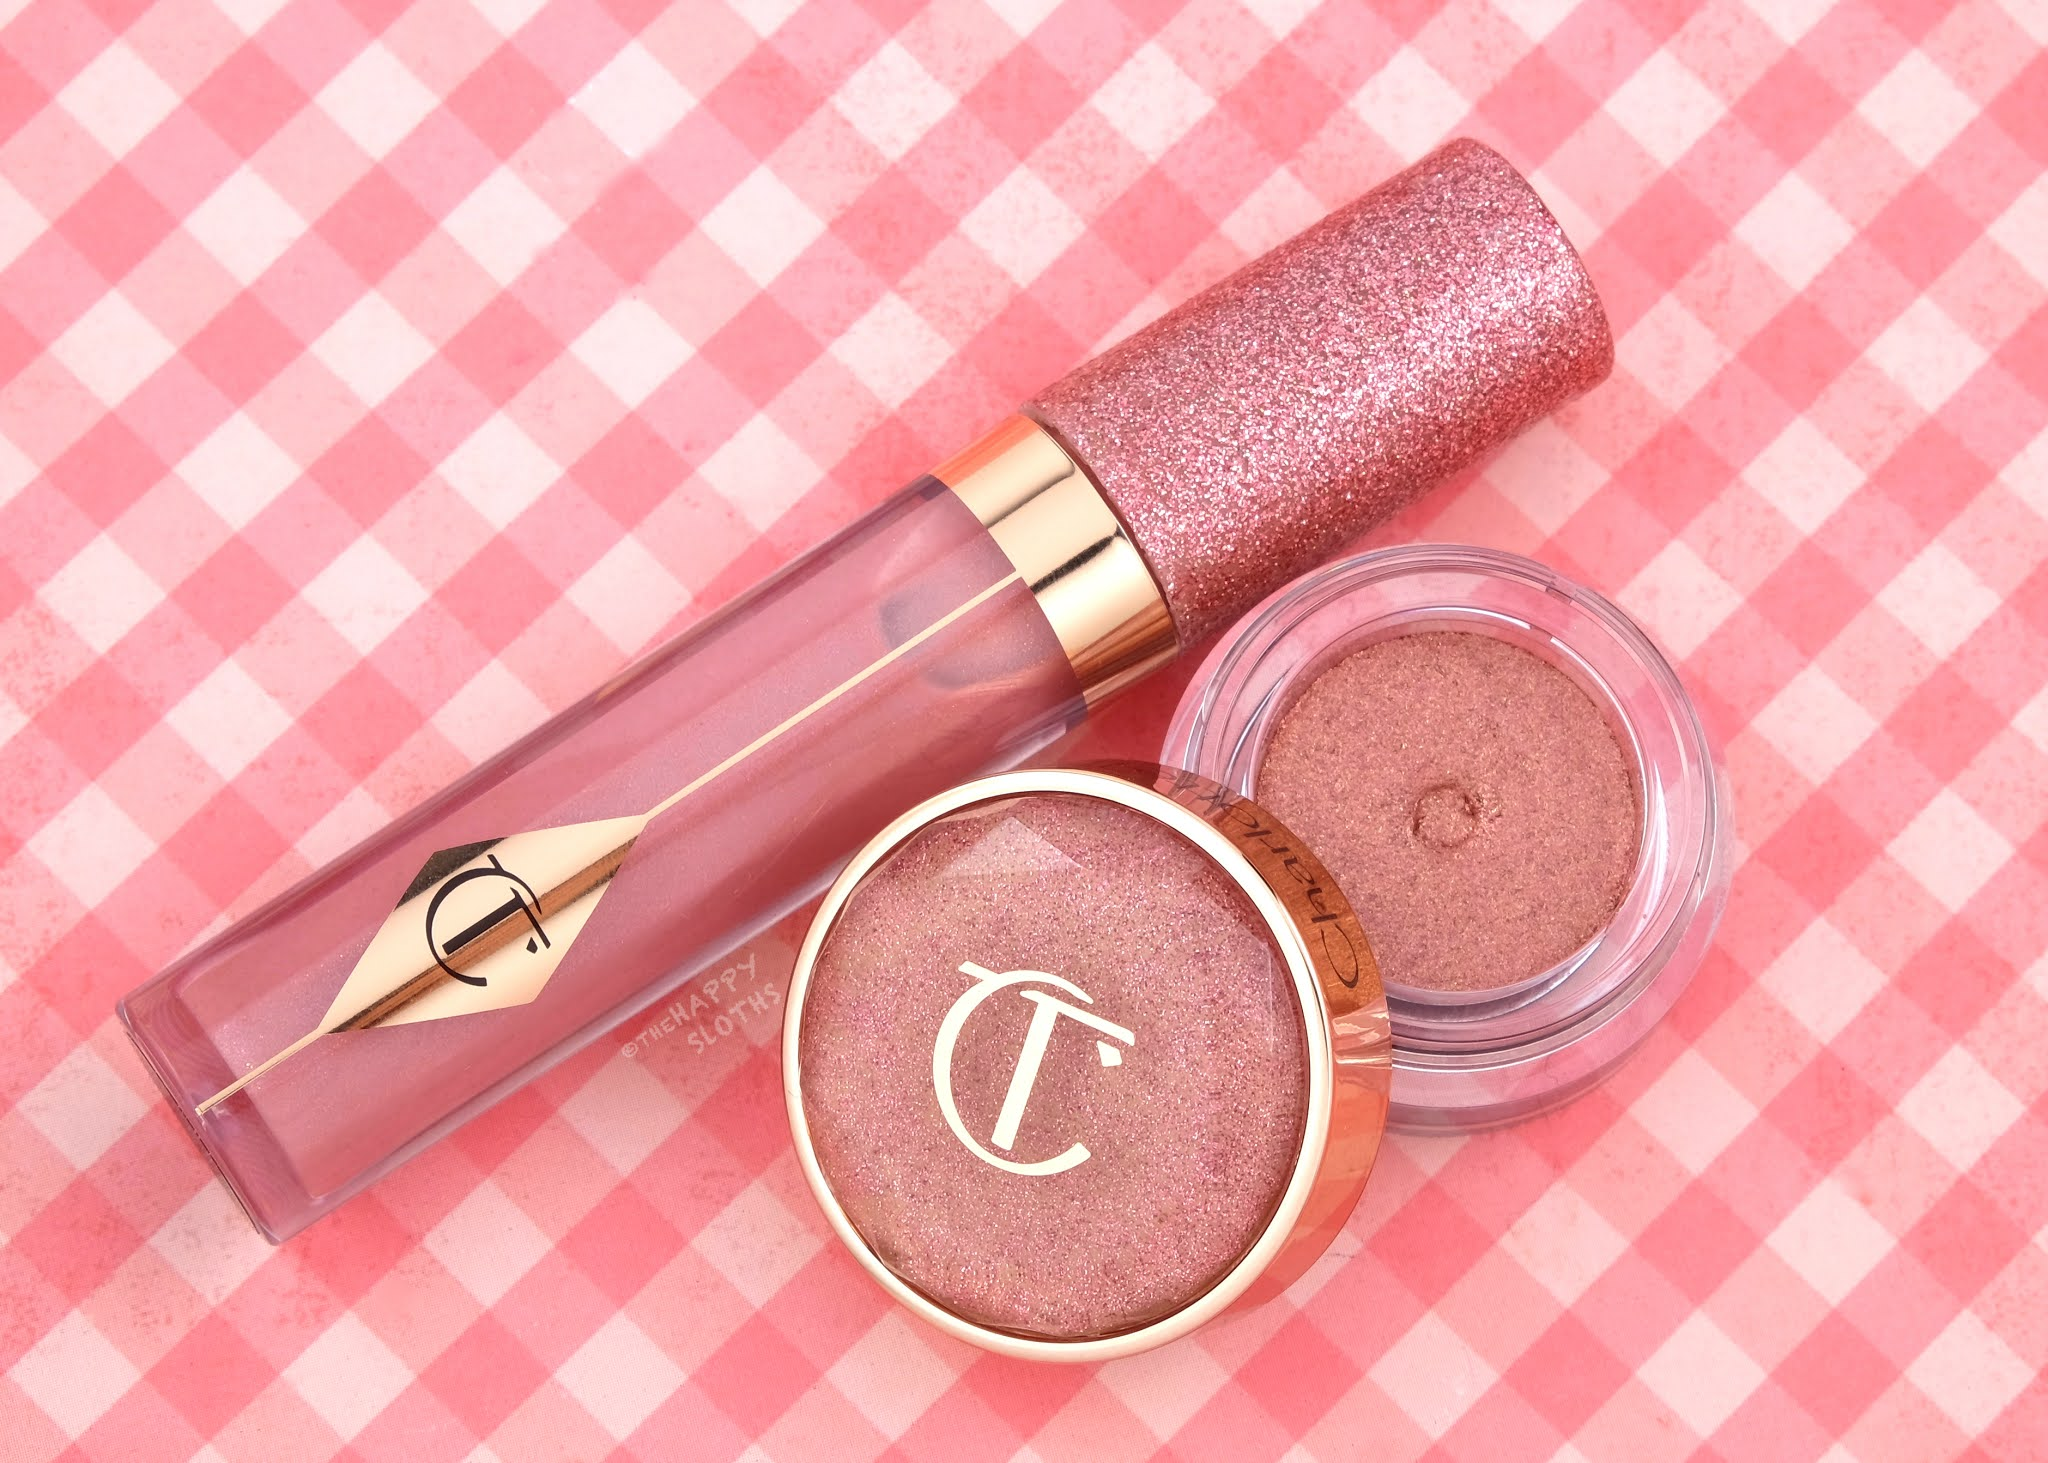 Charlotte Tilbury | Pillow Talk Charlotte's Jewel Lips & Walk of No Shame Charlotte's Jewel Pots: Review and Swatches